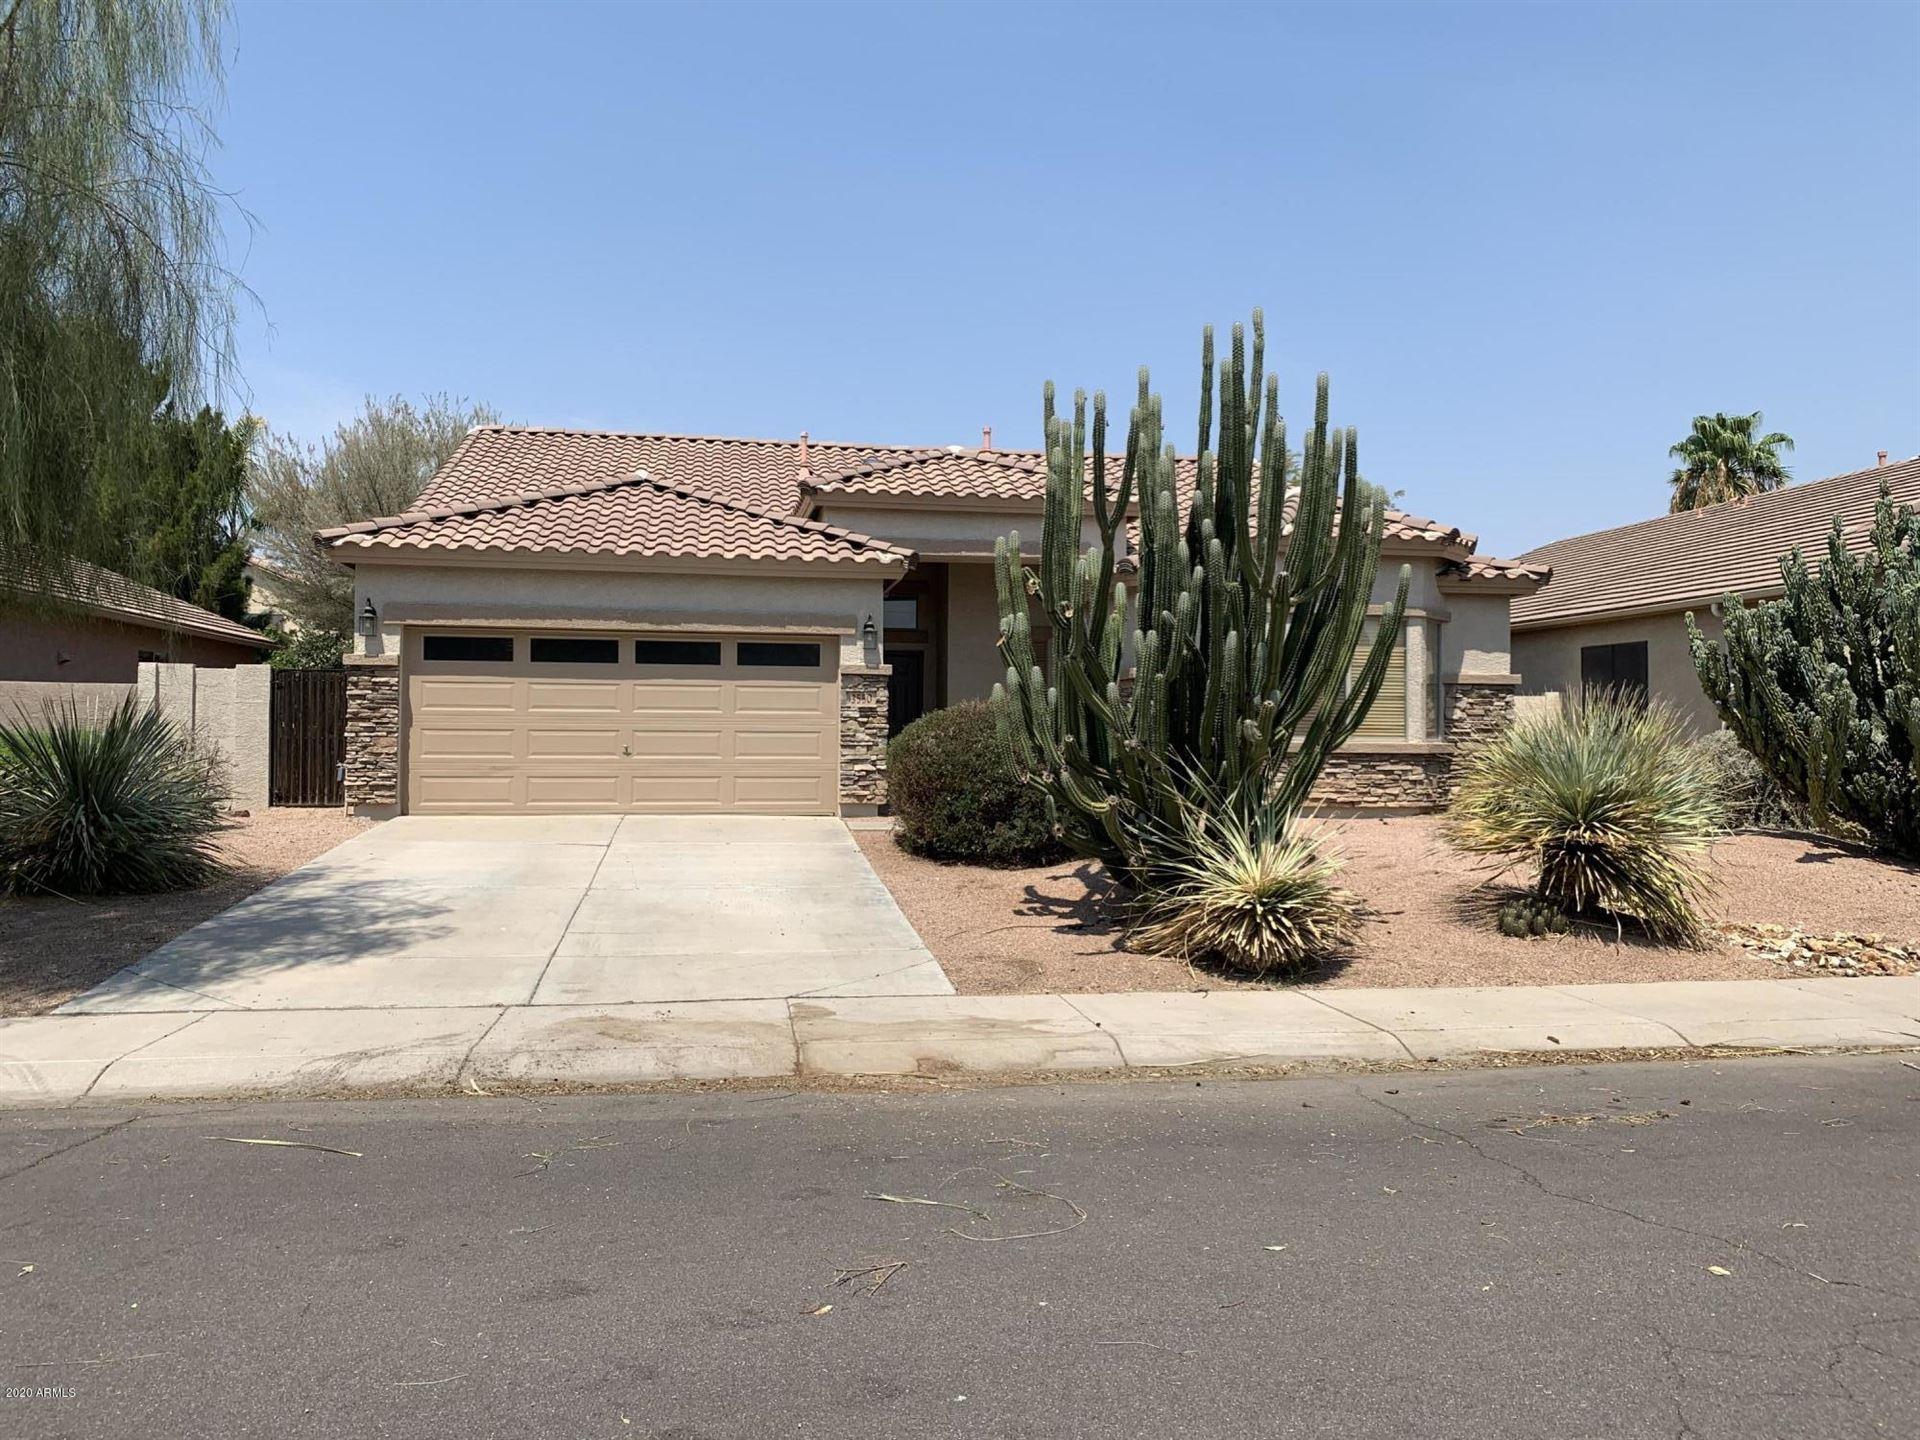 3550 E FEATHER Avenue, Gilbert, AZ 85234 - MLS#: 6122357